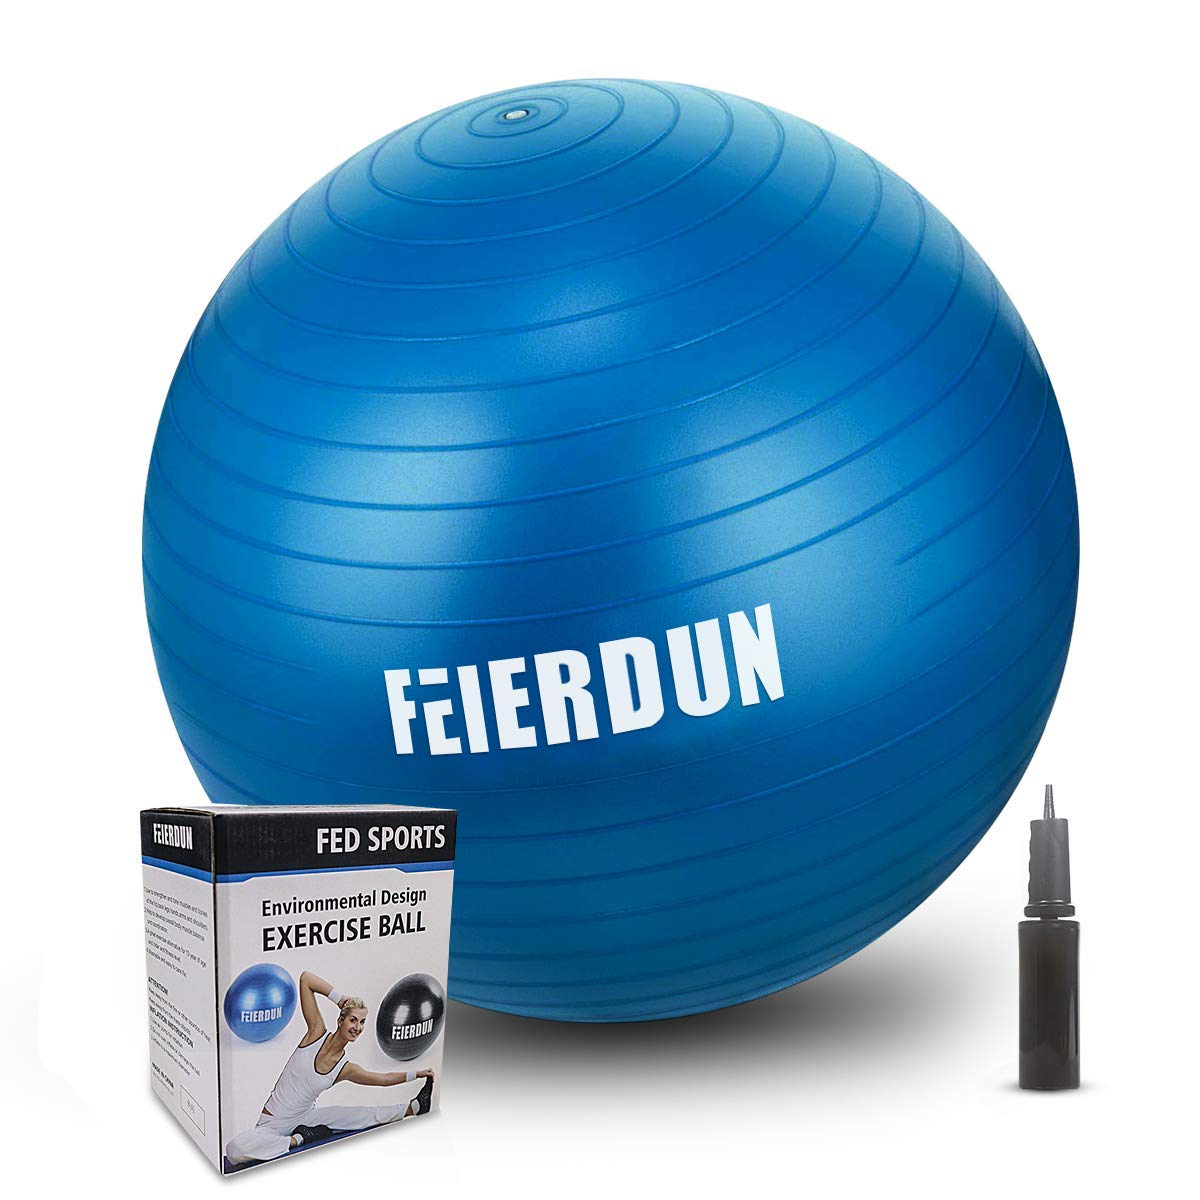 FEIERDUN Fitness Health Exercise Ball, Heavy Duty Birthing Ball Anti-Burst Slip Yoga Ball with Quick Pump for Office Home Gym Abdominal Training